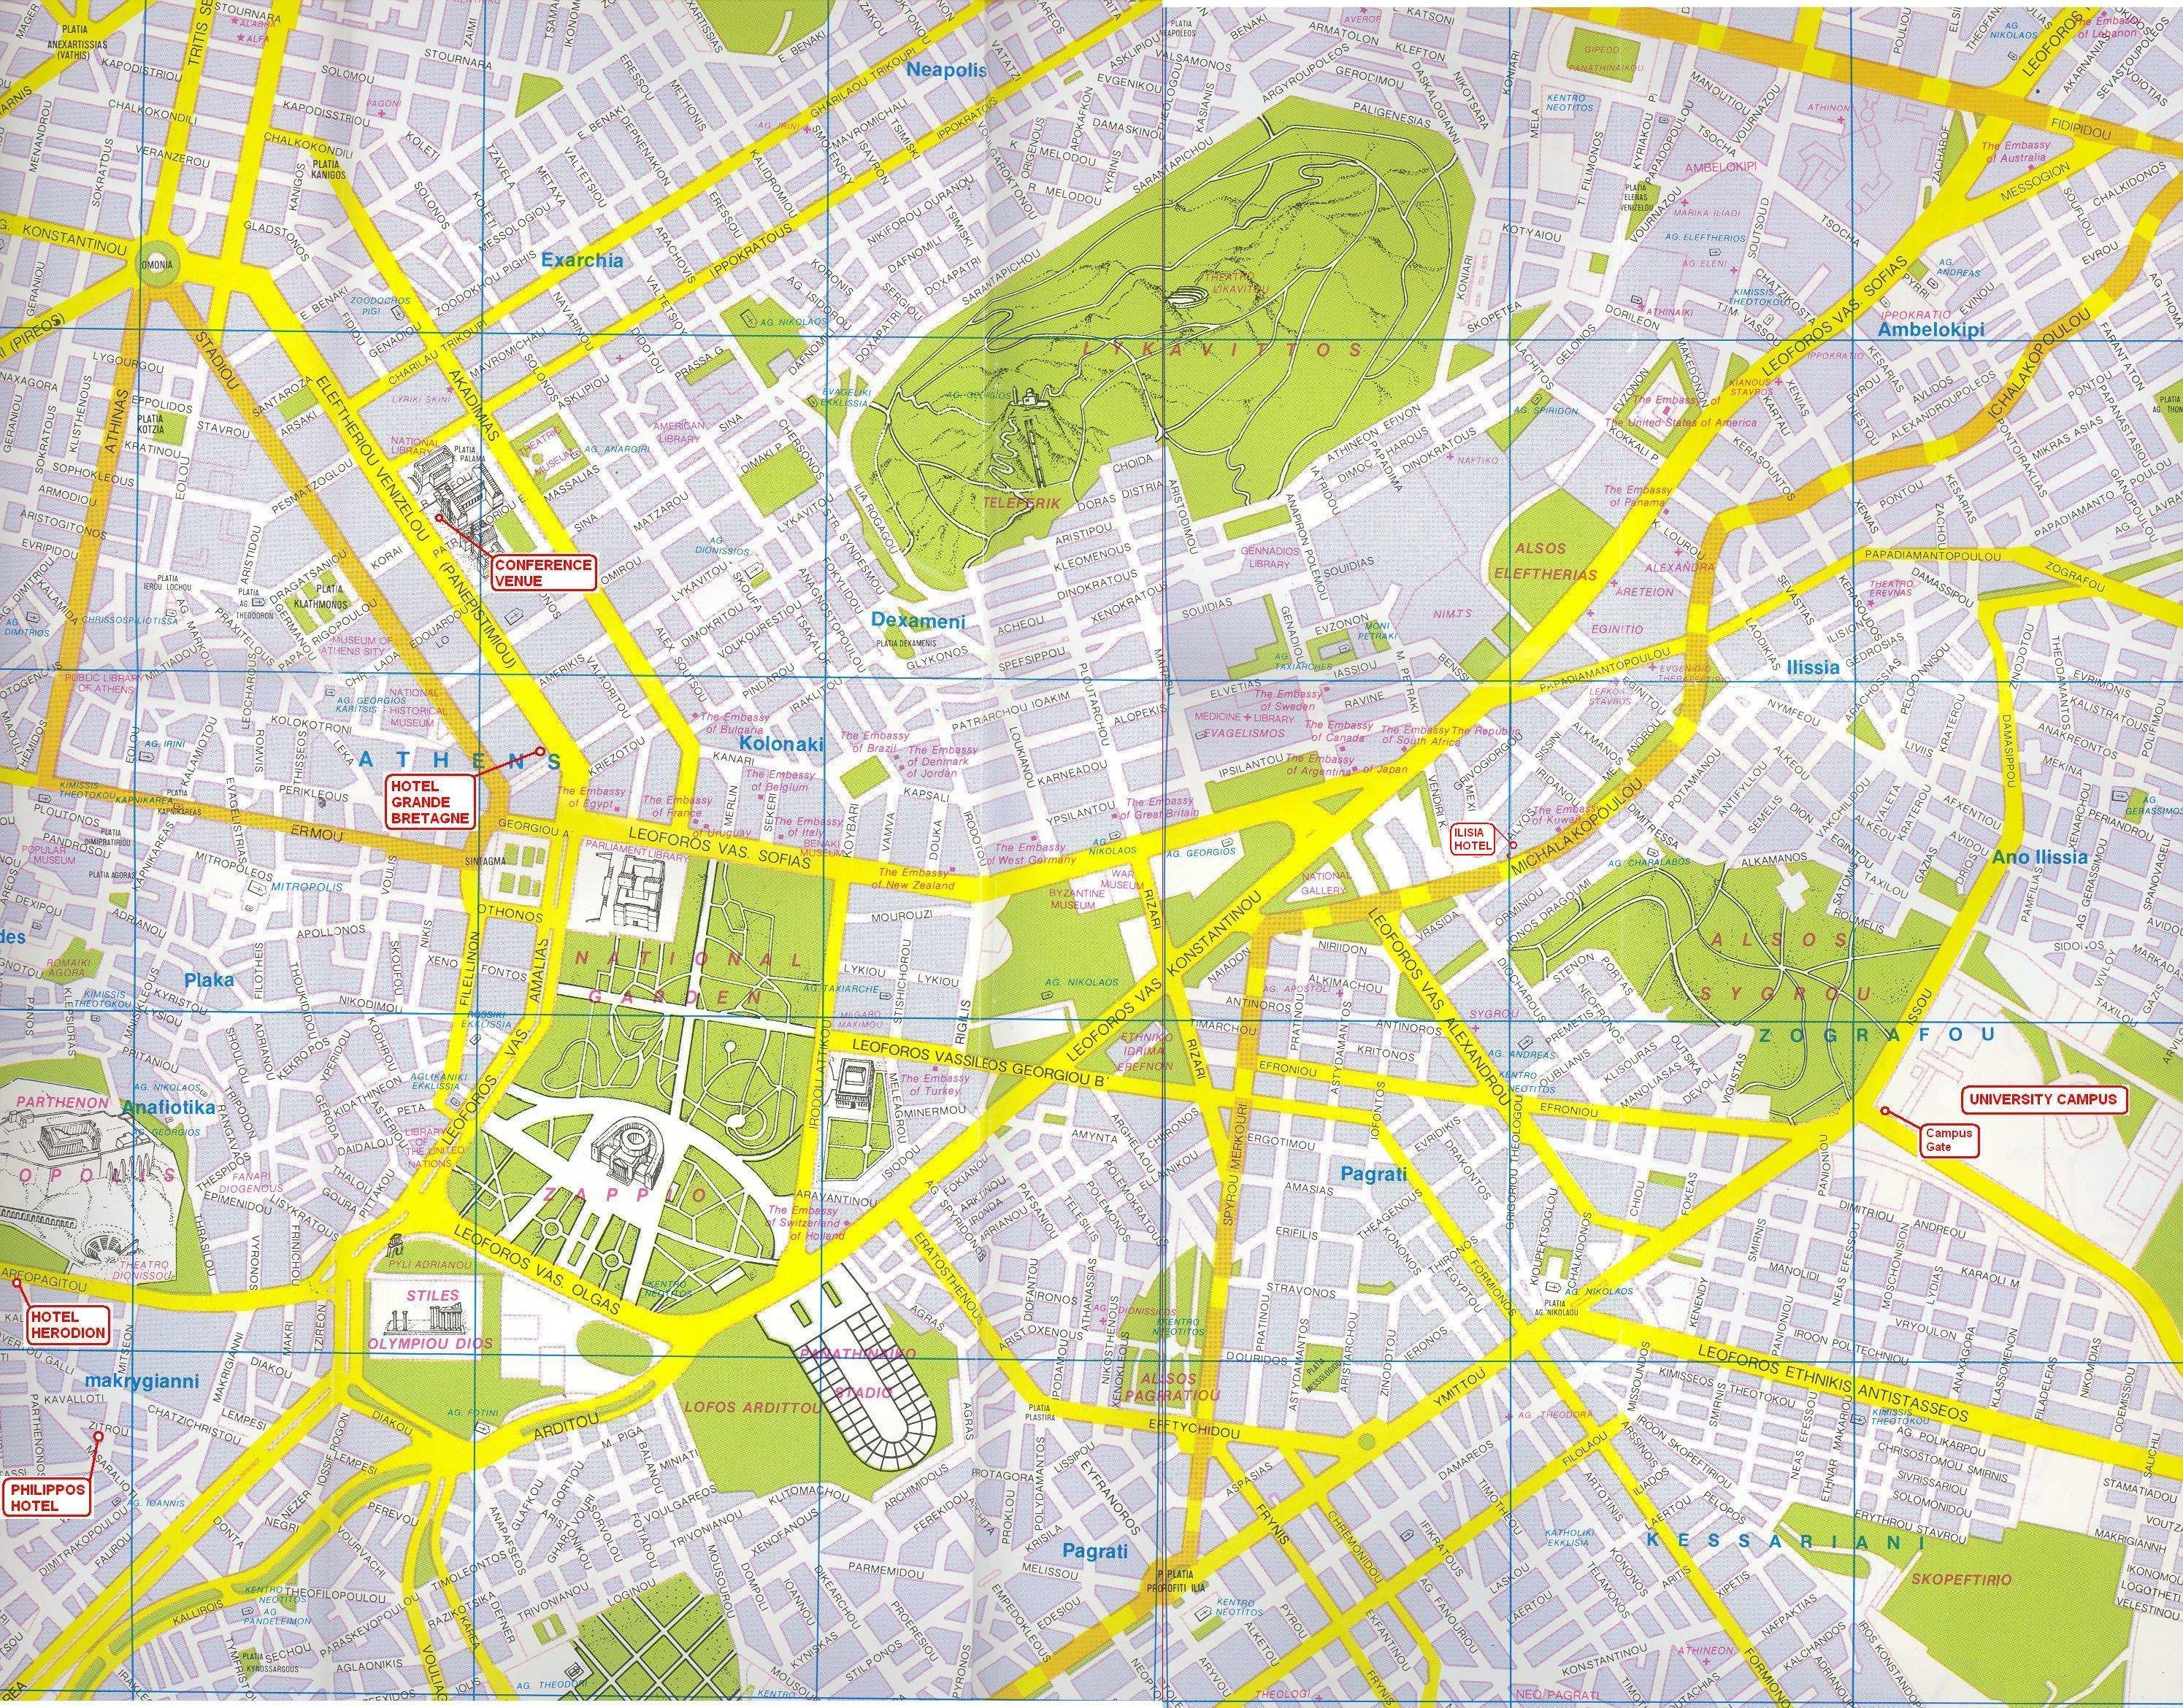 Large Athens Maps For Free Download And Print High Resolution